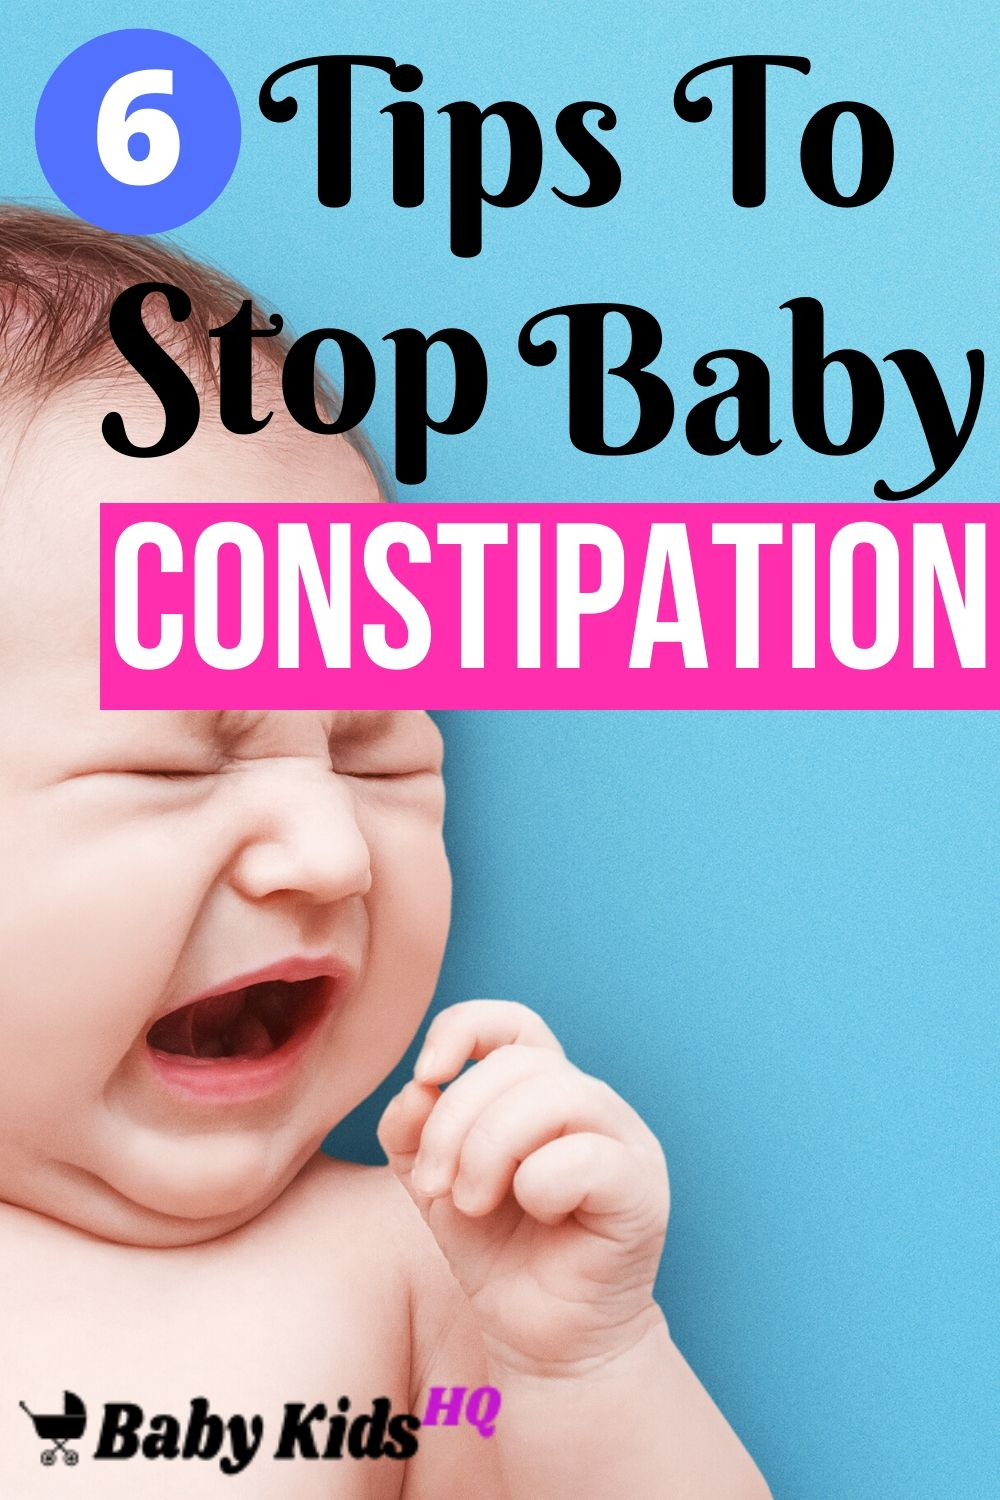 6 Tips To Stop Baby Constipation